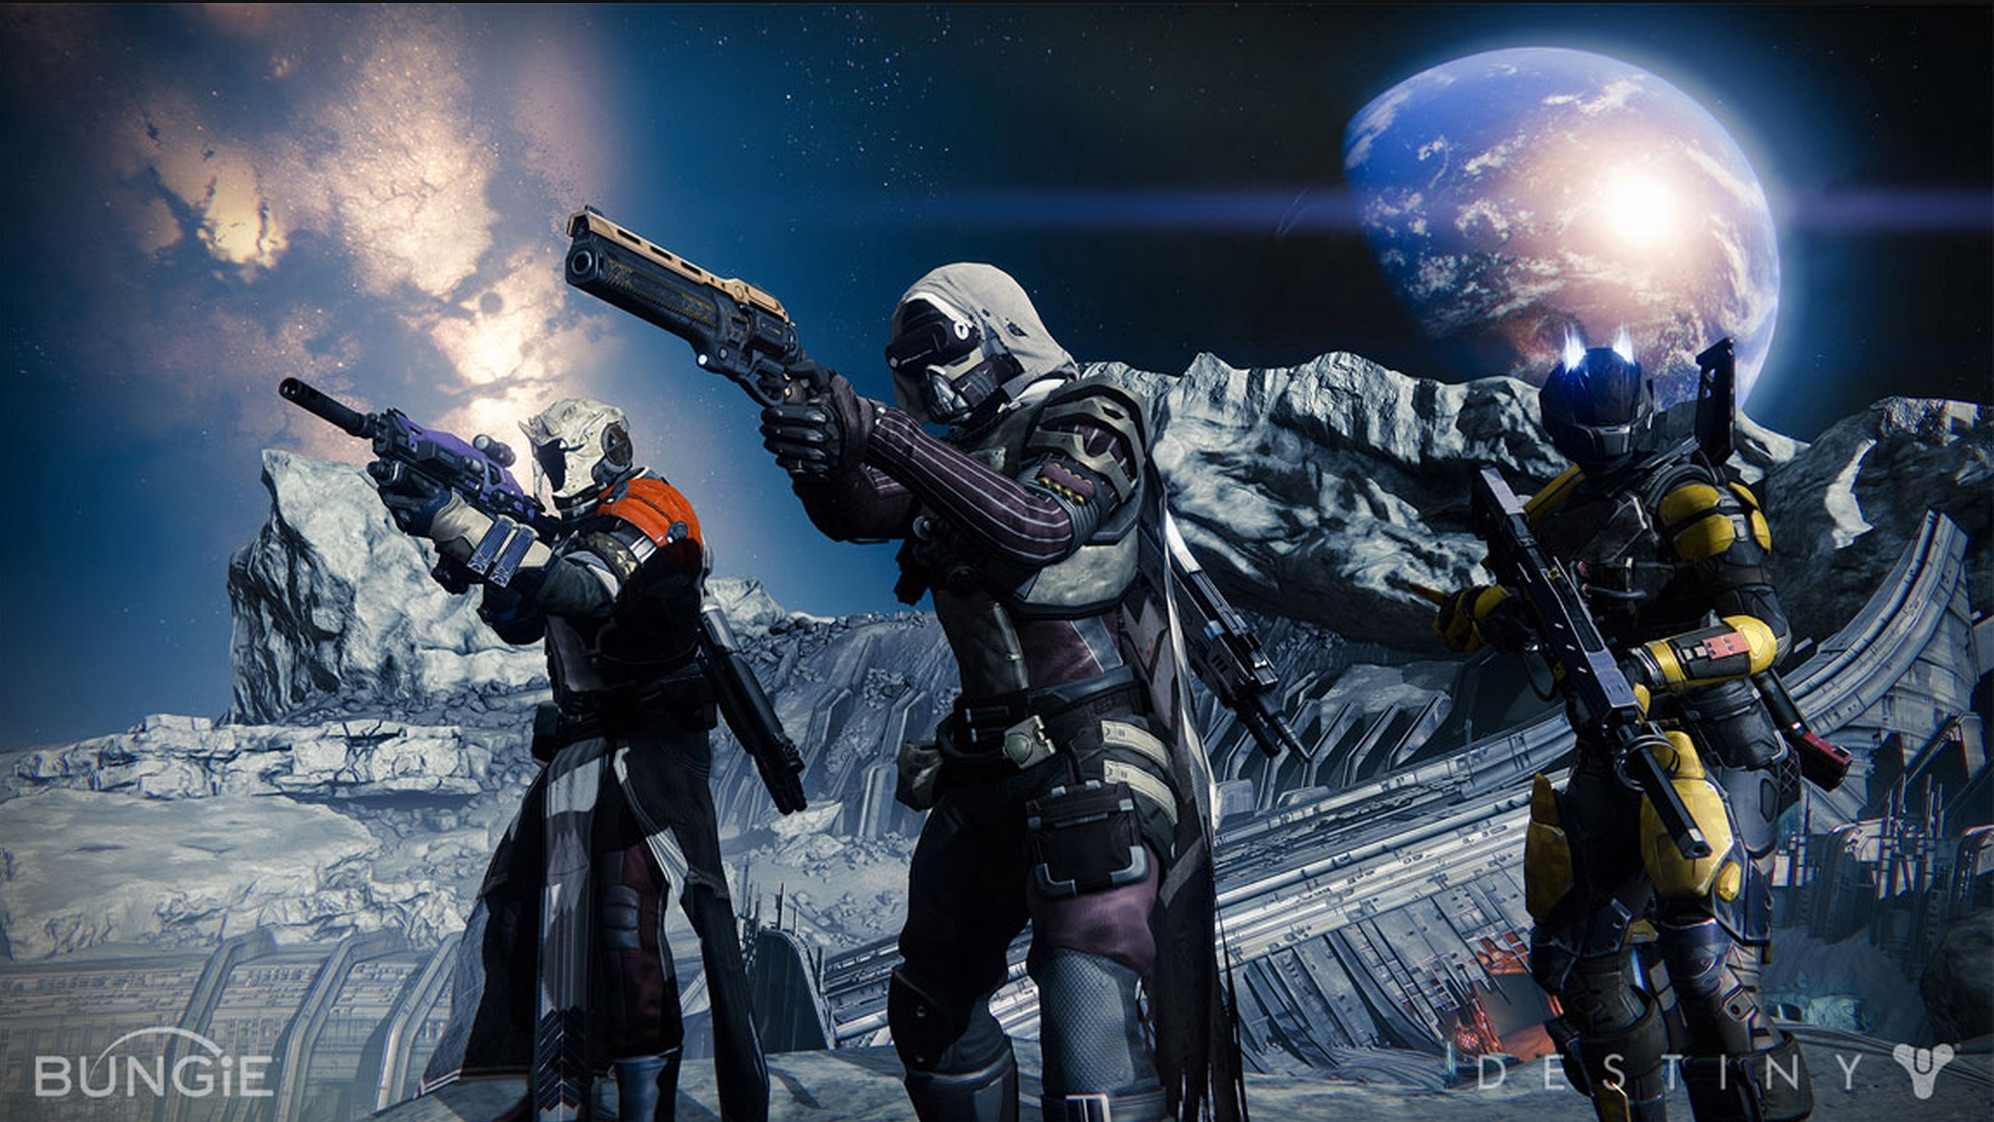 A number of Destiny Beta problems prevent some gamers from playing.